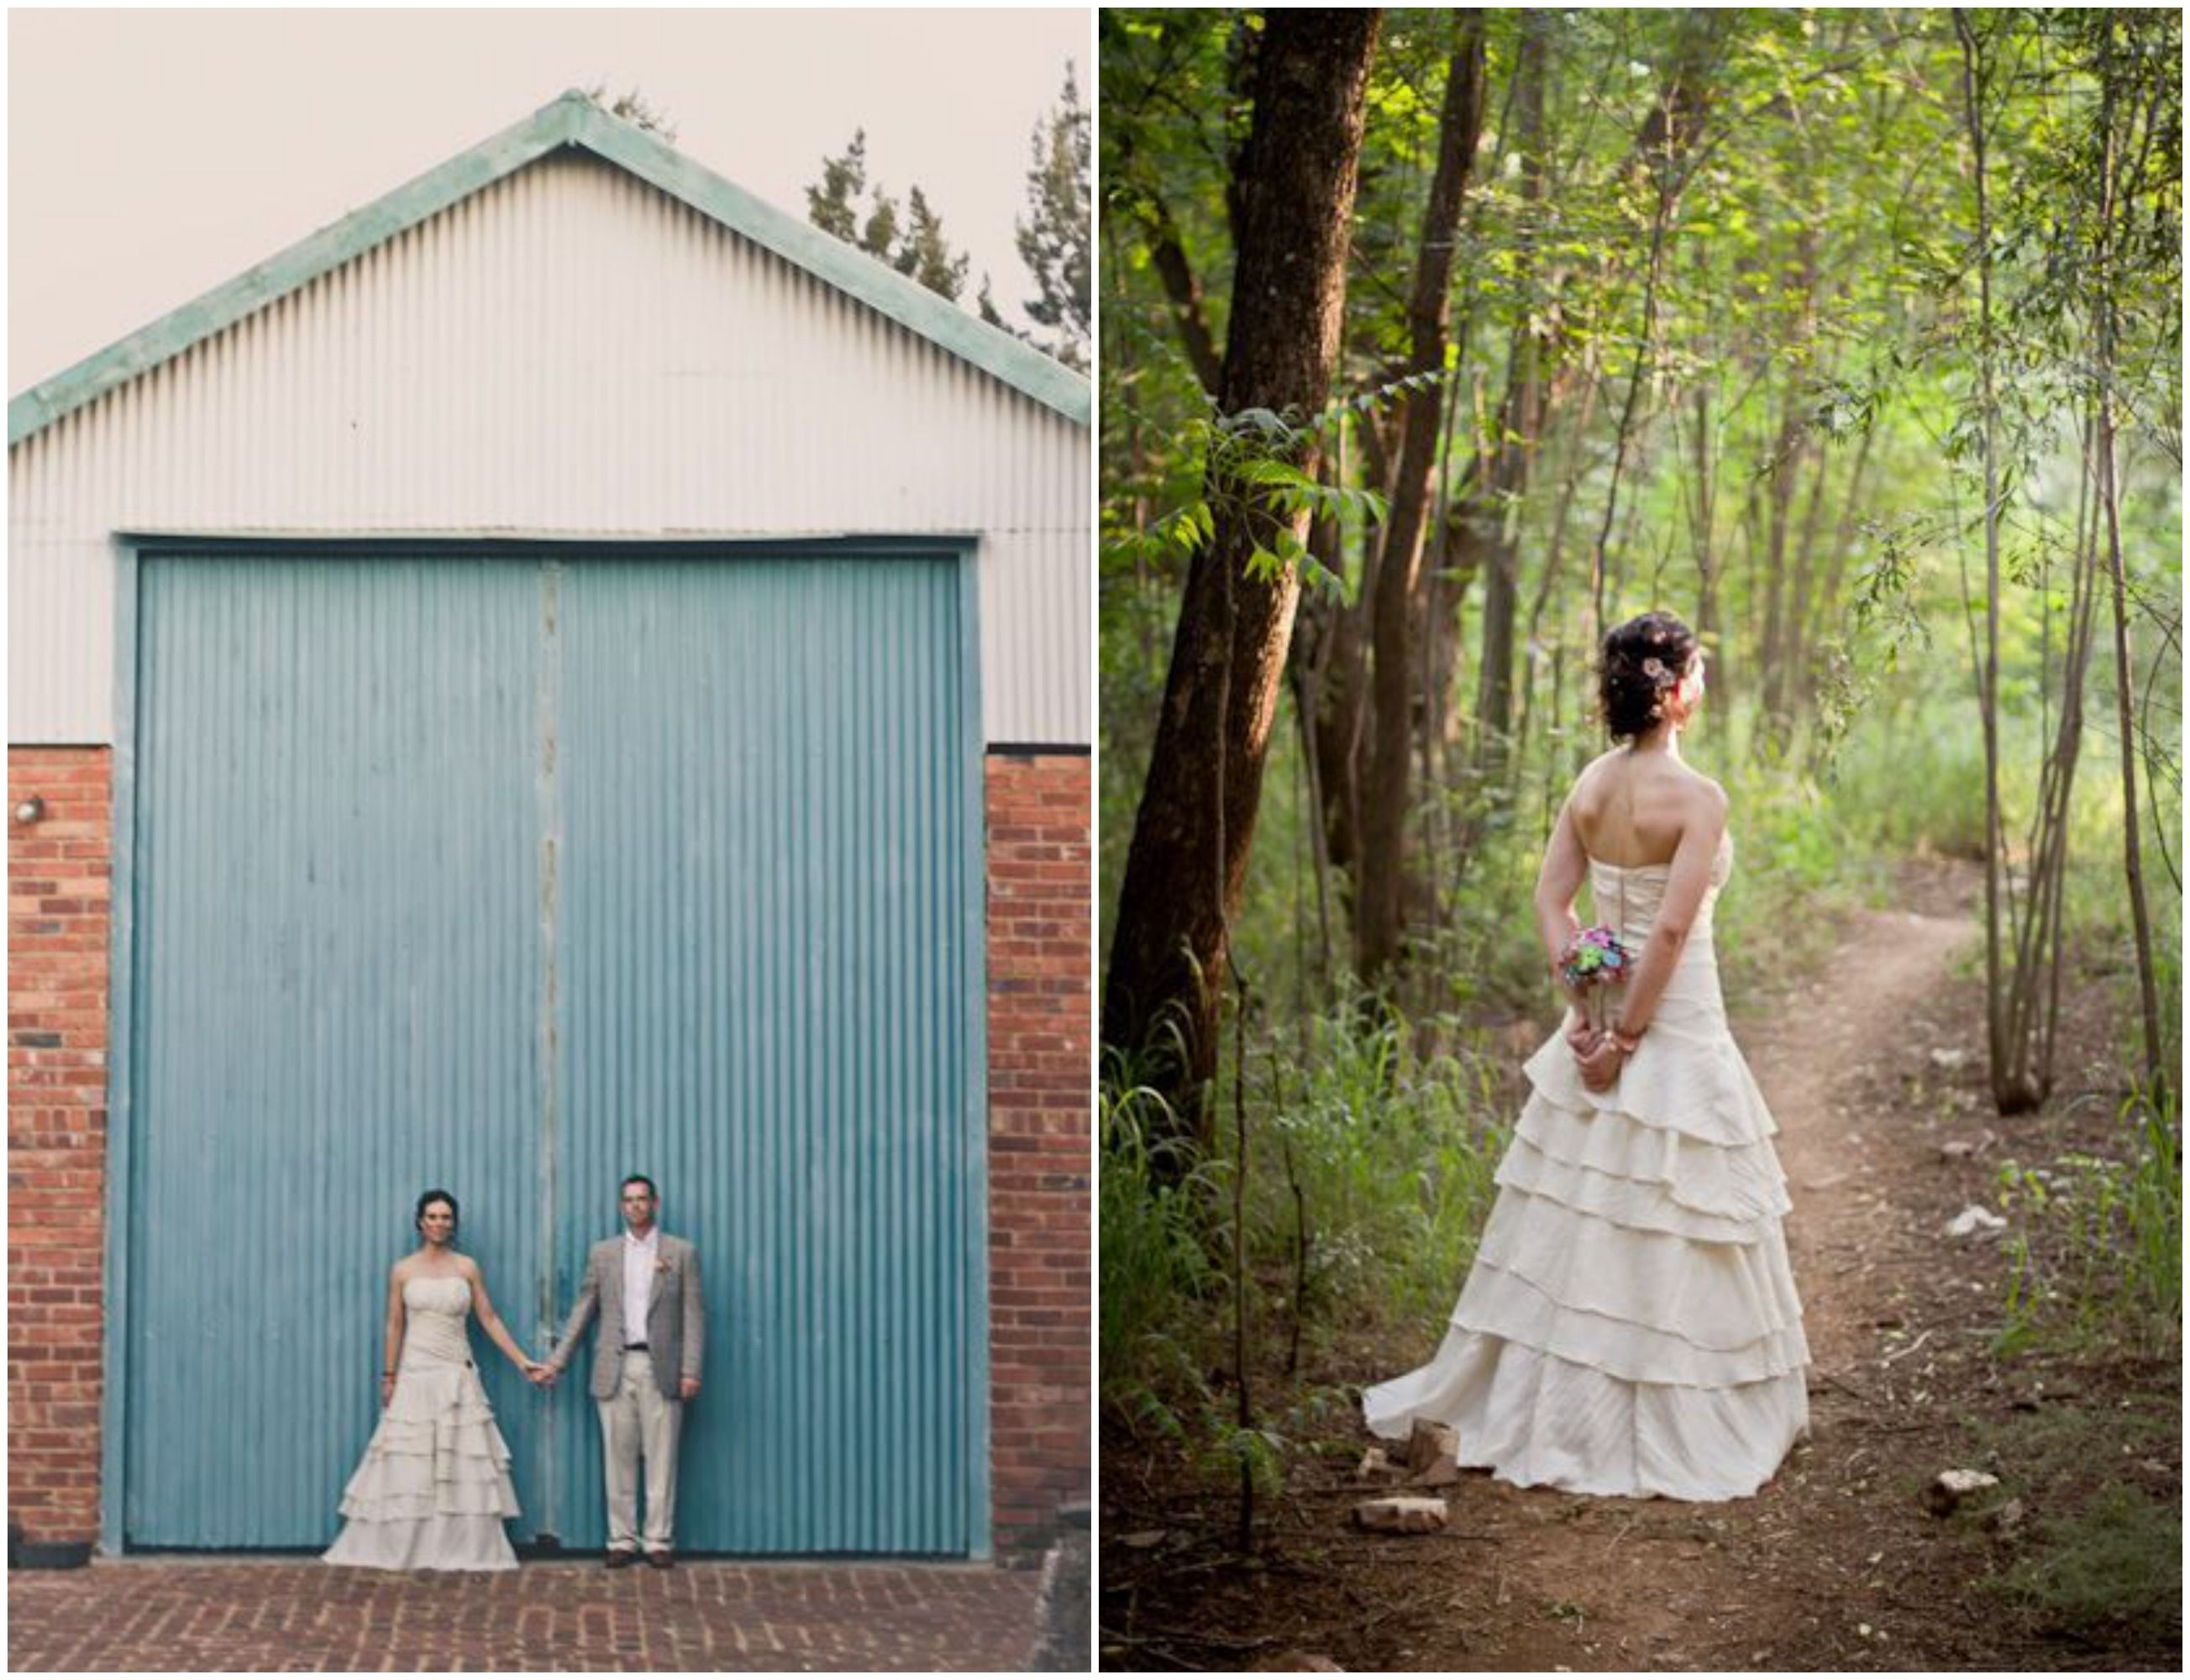 South African Rustic Wedding | Rustic wedding chic, Wedding planners ...